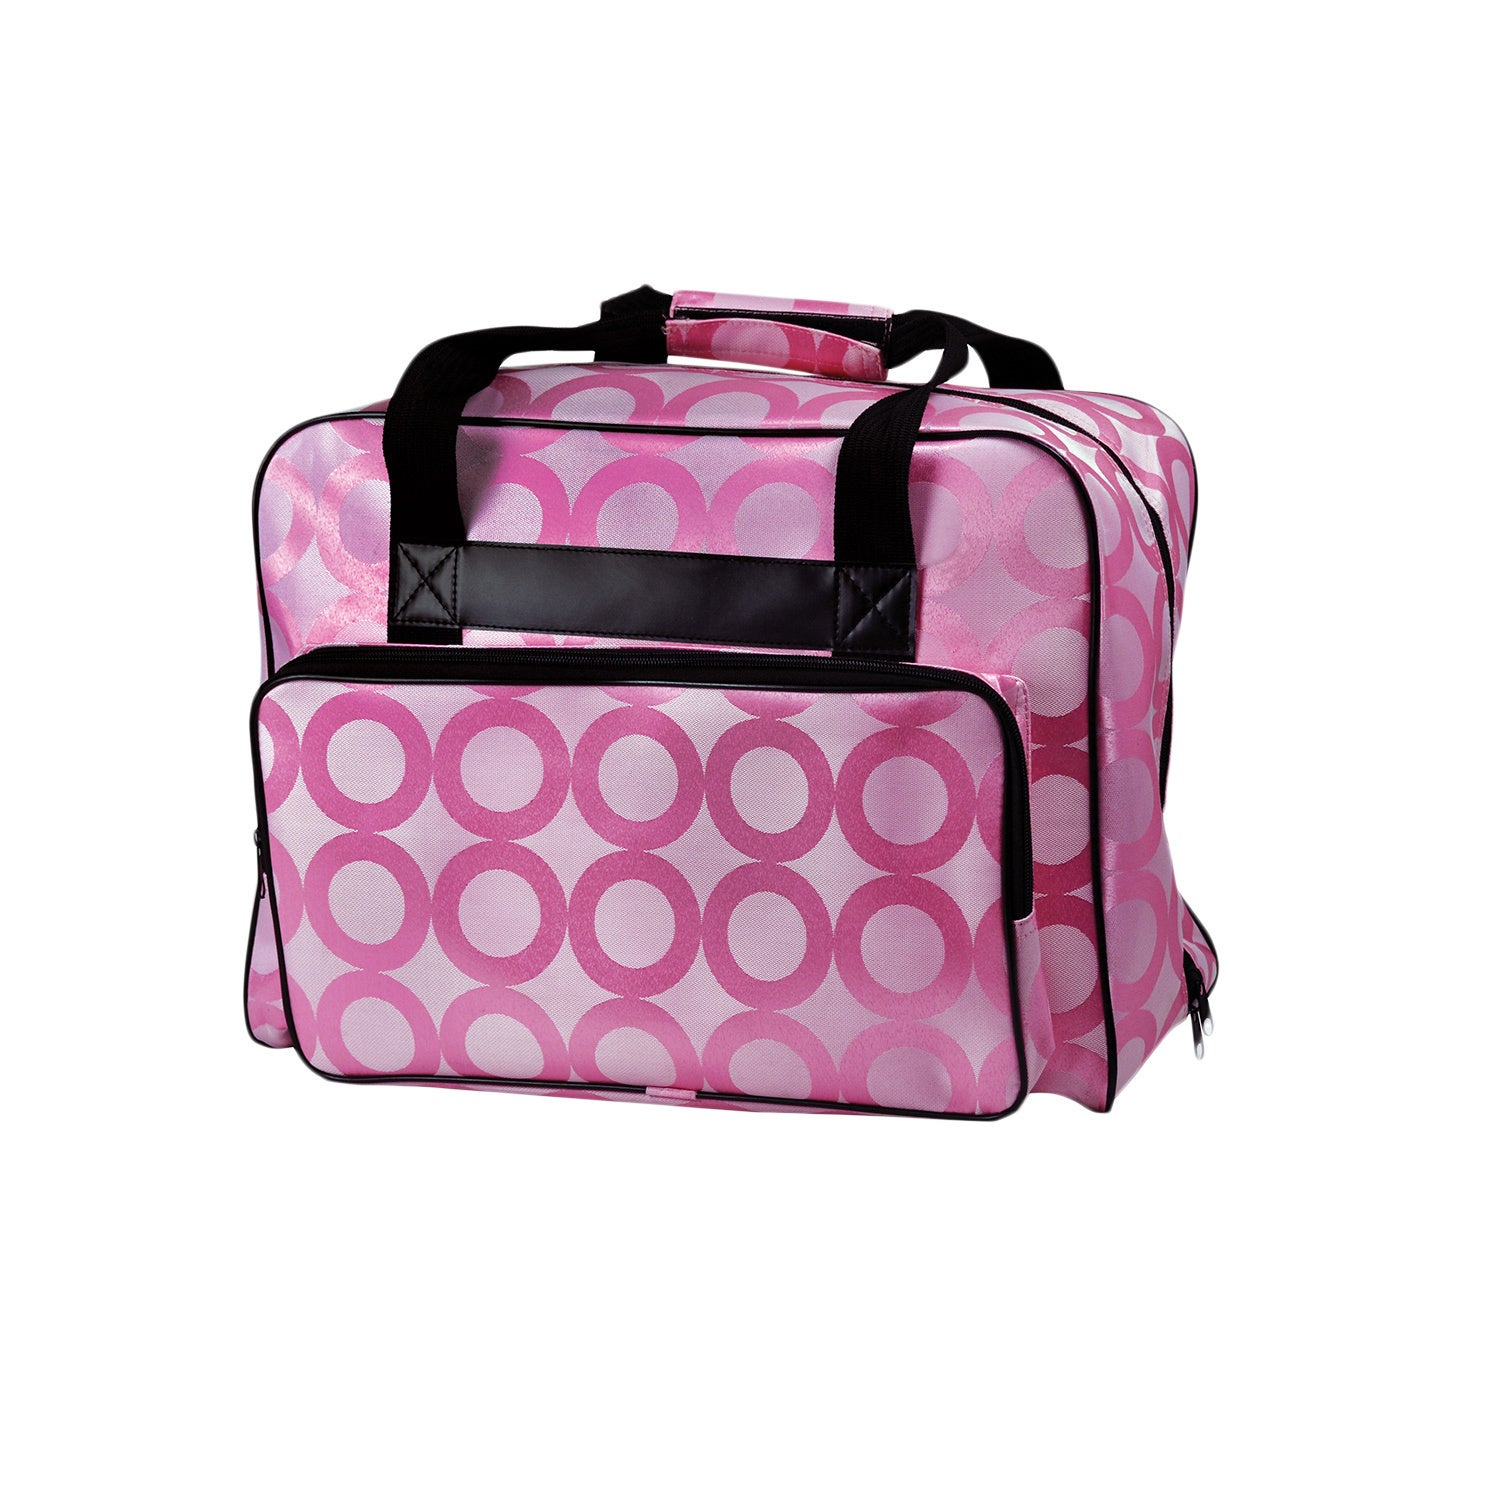 Janome Universal Sewing Machine Durable Canvas Pink Tote ...